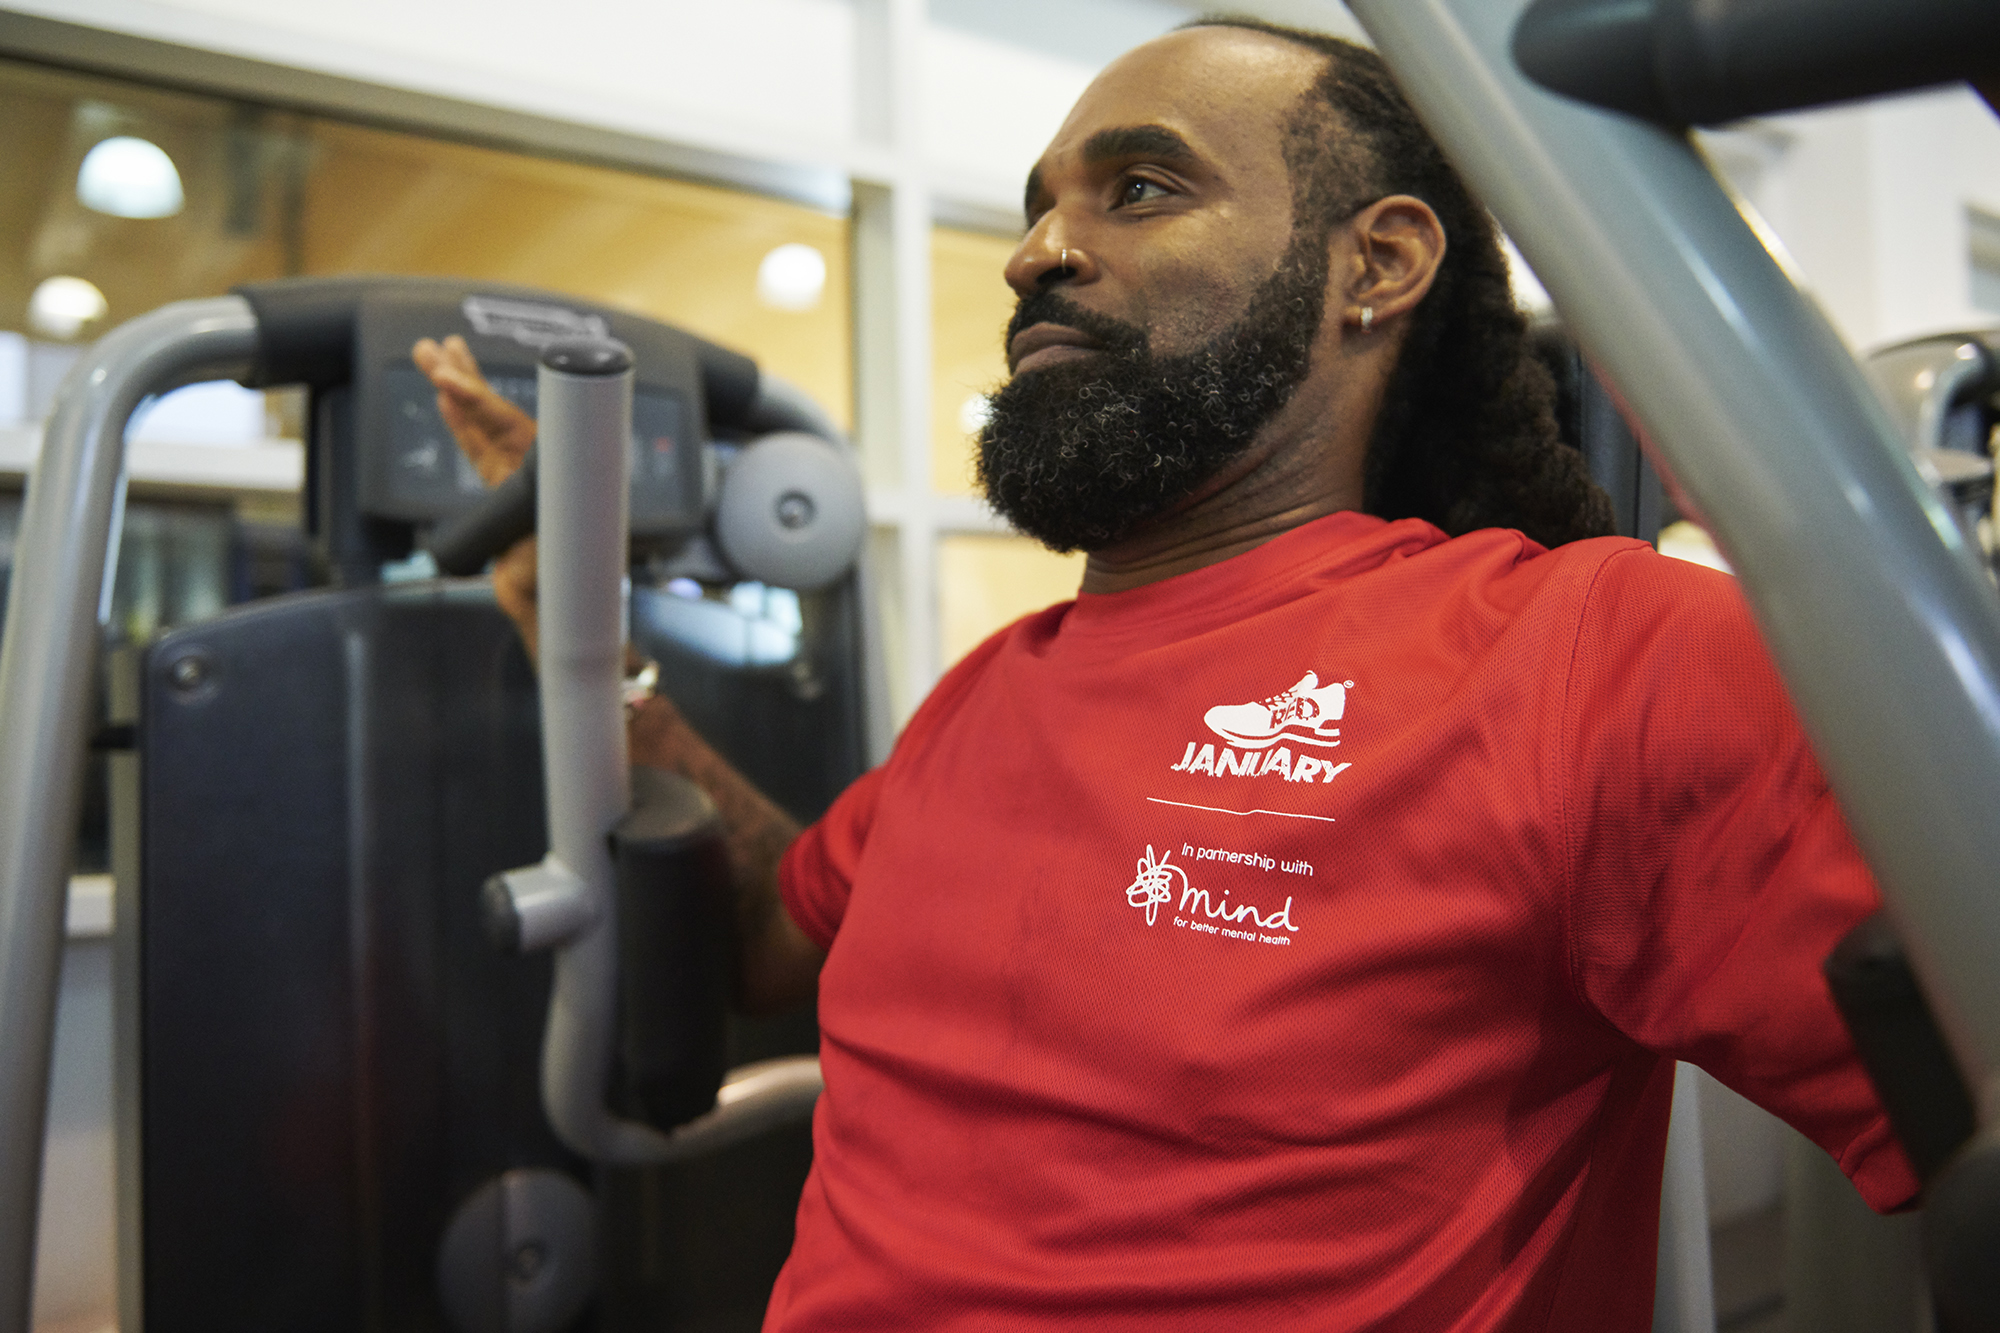 Man using gym equipment wearing RED January t-shirt